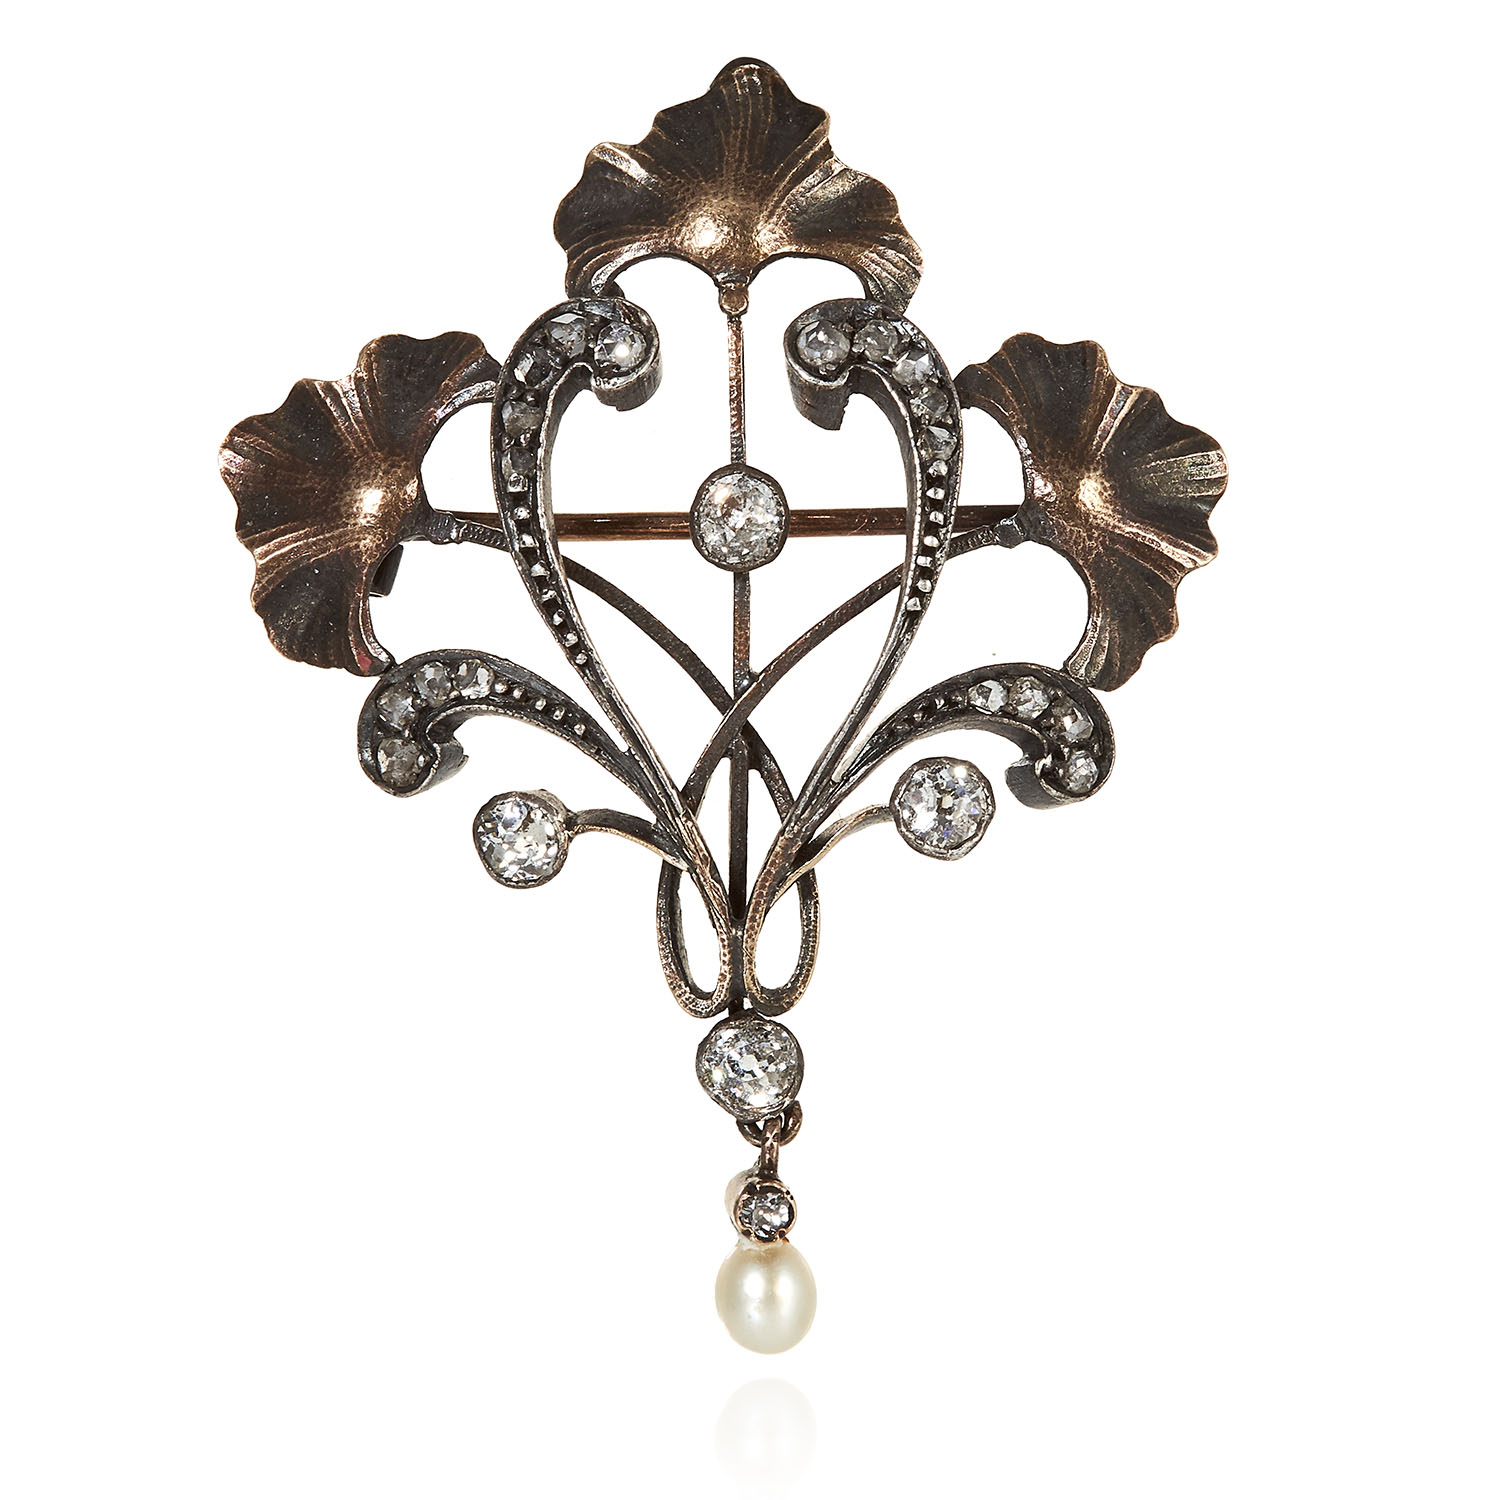 AN ART NOUVEAU DIAMOND AND PEARL BROOCH in foliate design, jewelled with four central round cut